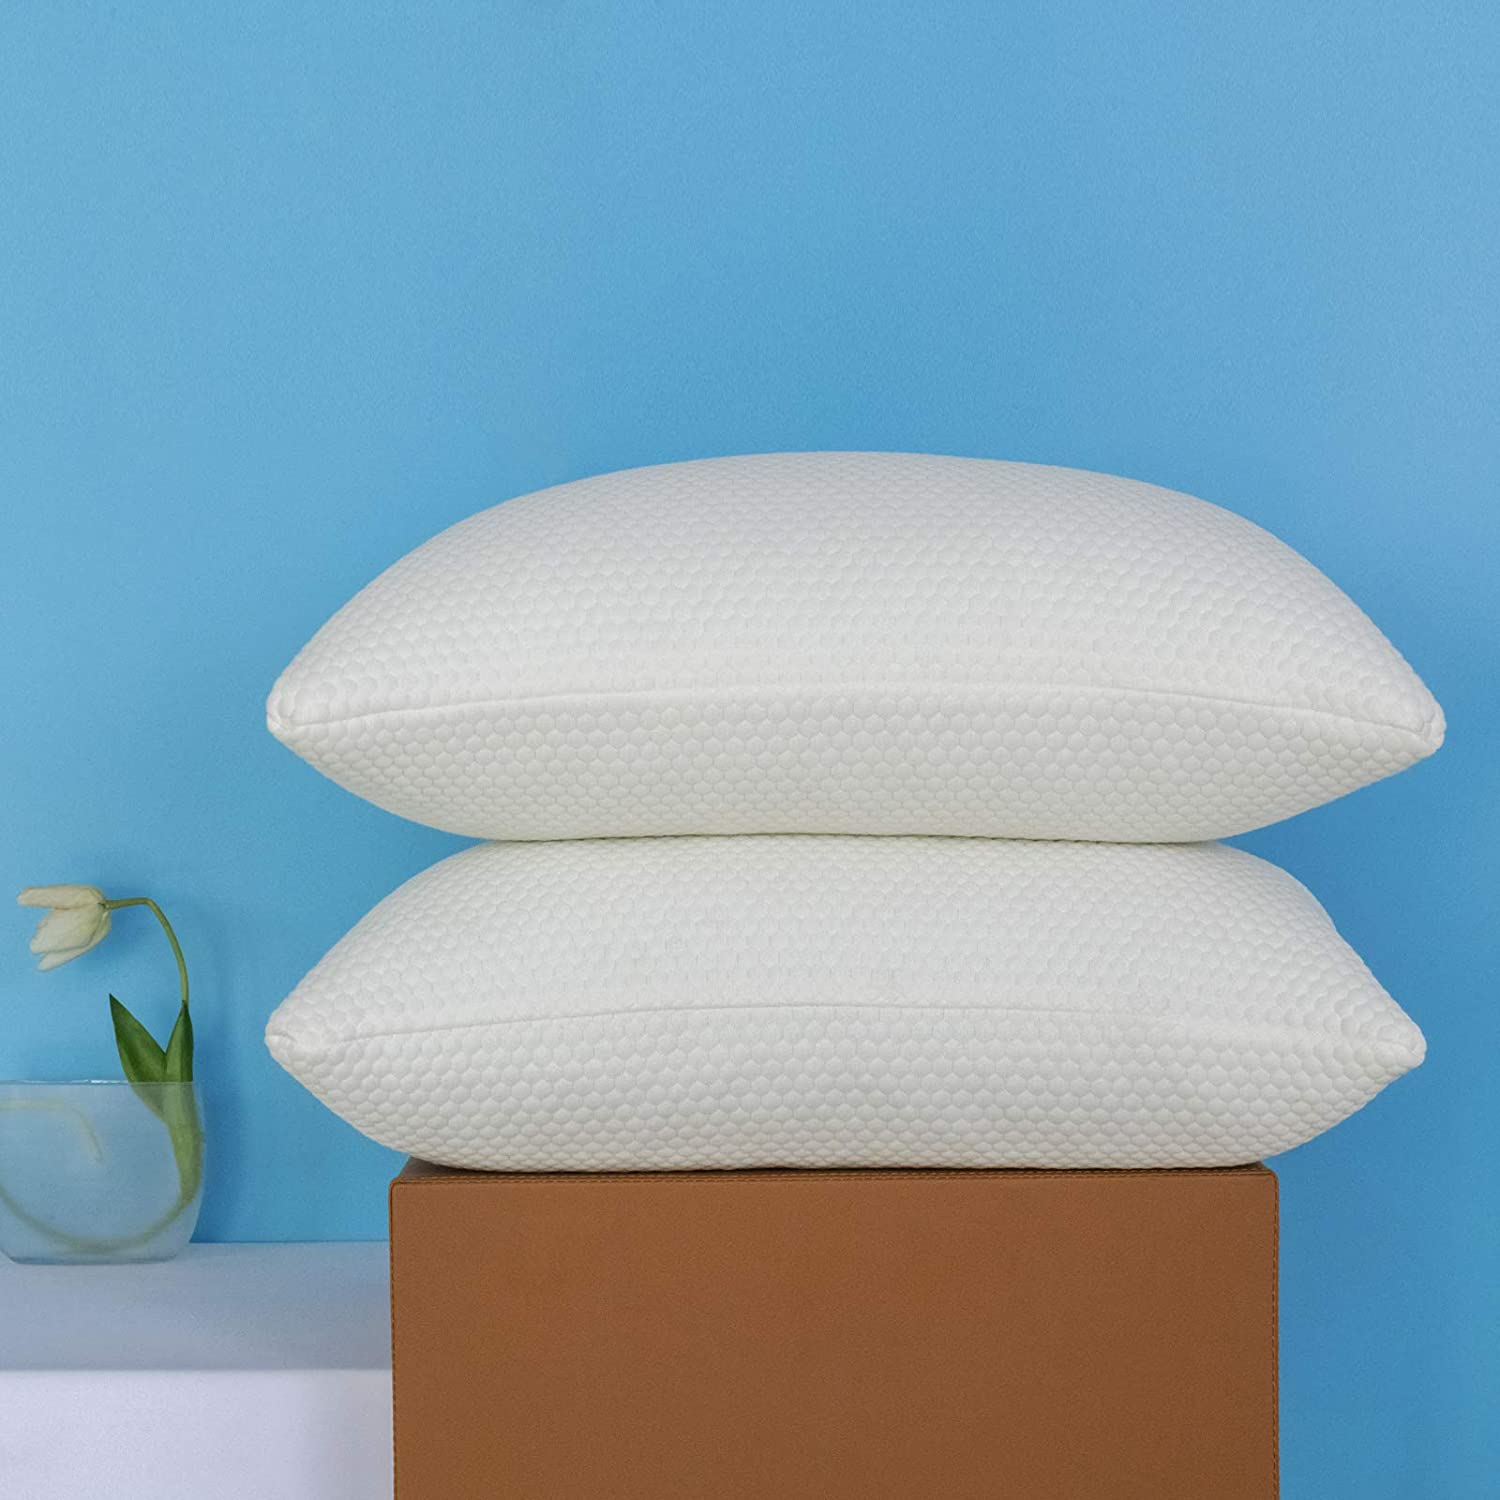 Molblly Ultra-Cheap Deals King Size Pillows 2 Pack Shredded Max 75% OFF Memory Firm Bed Foam